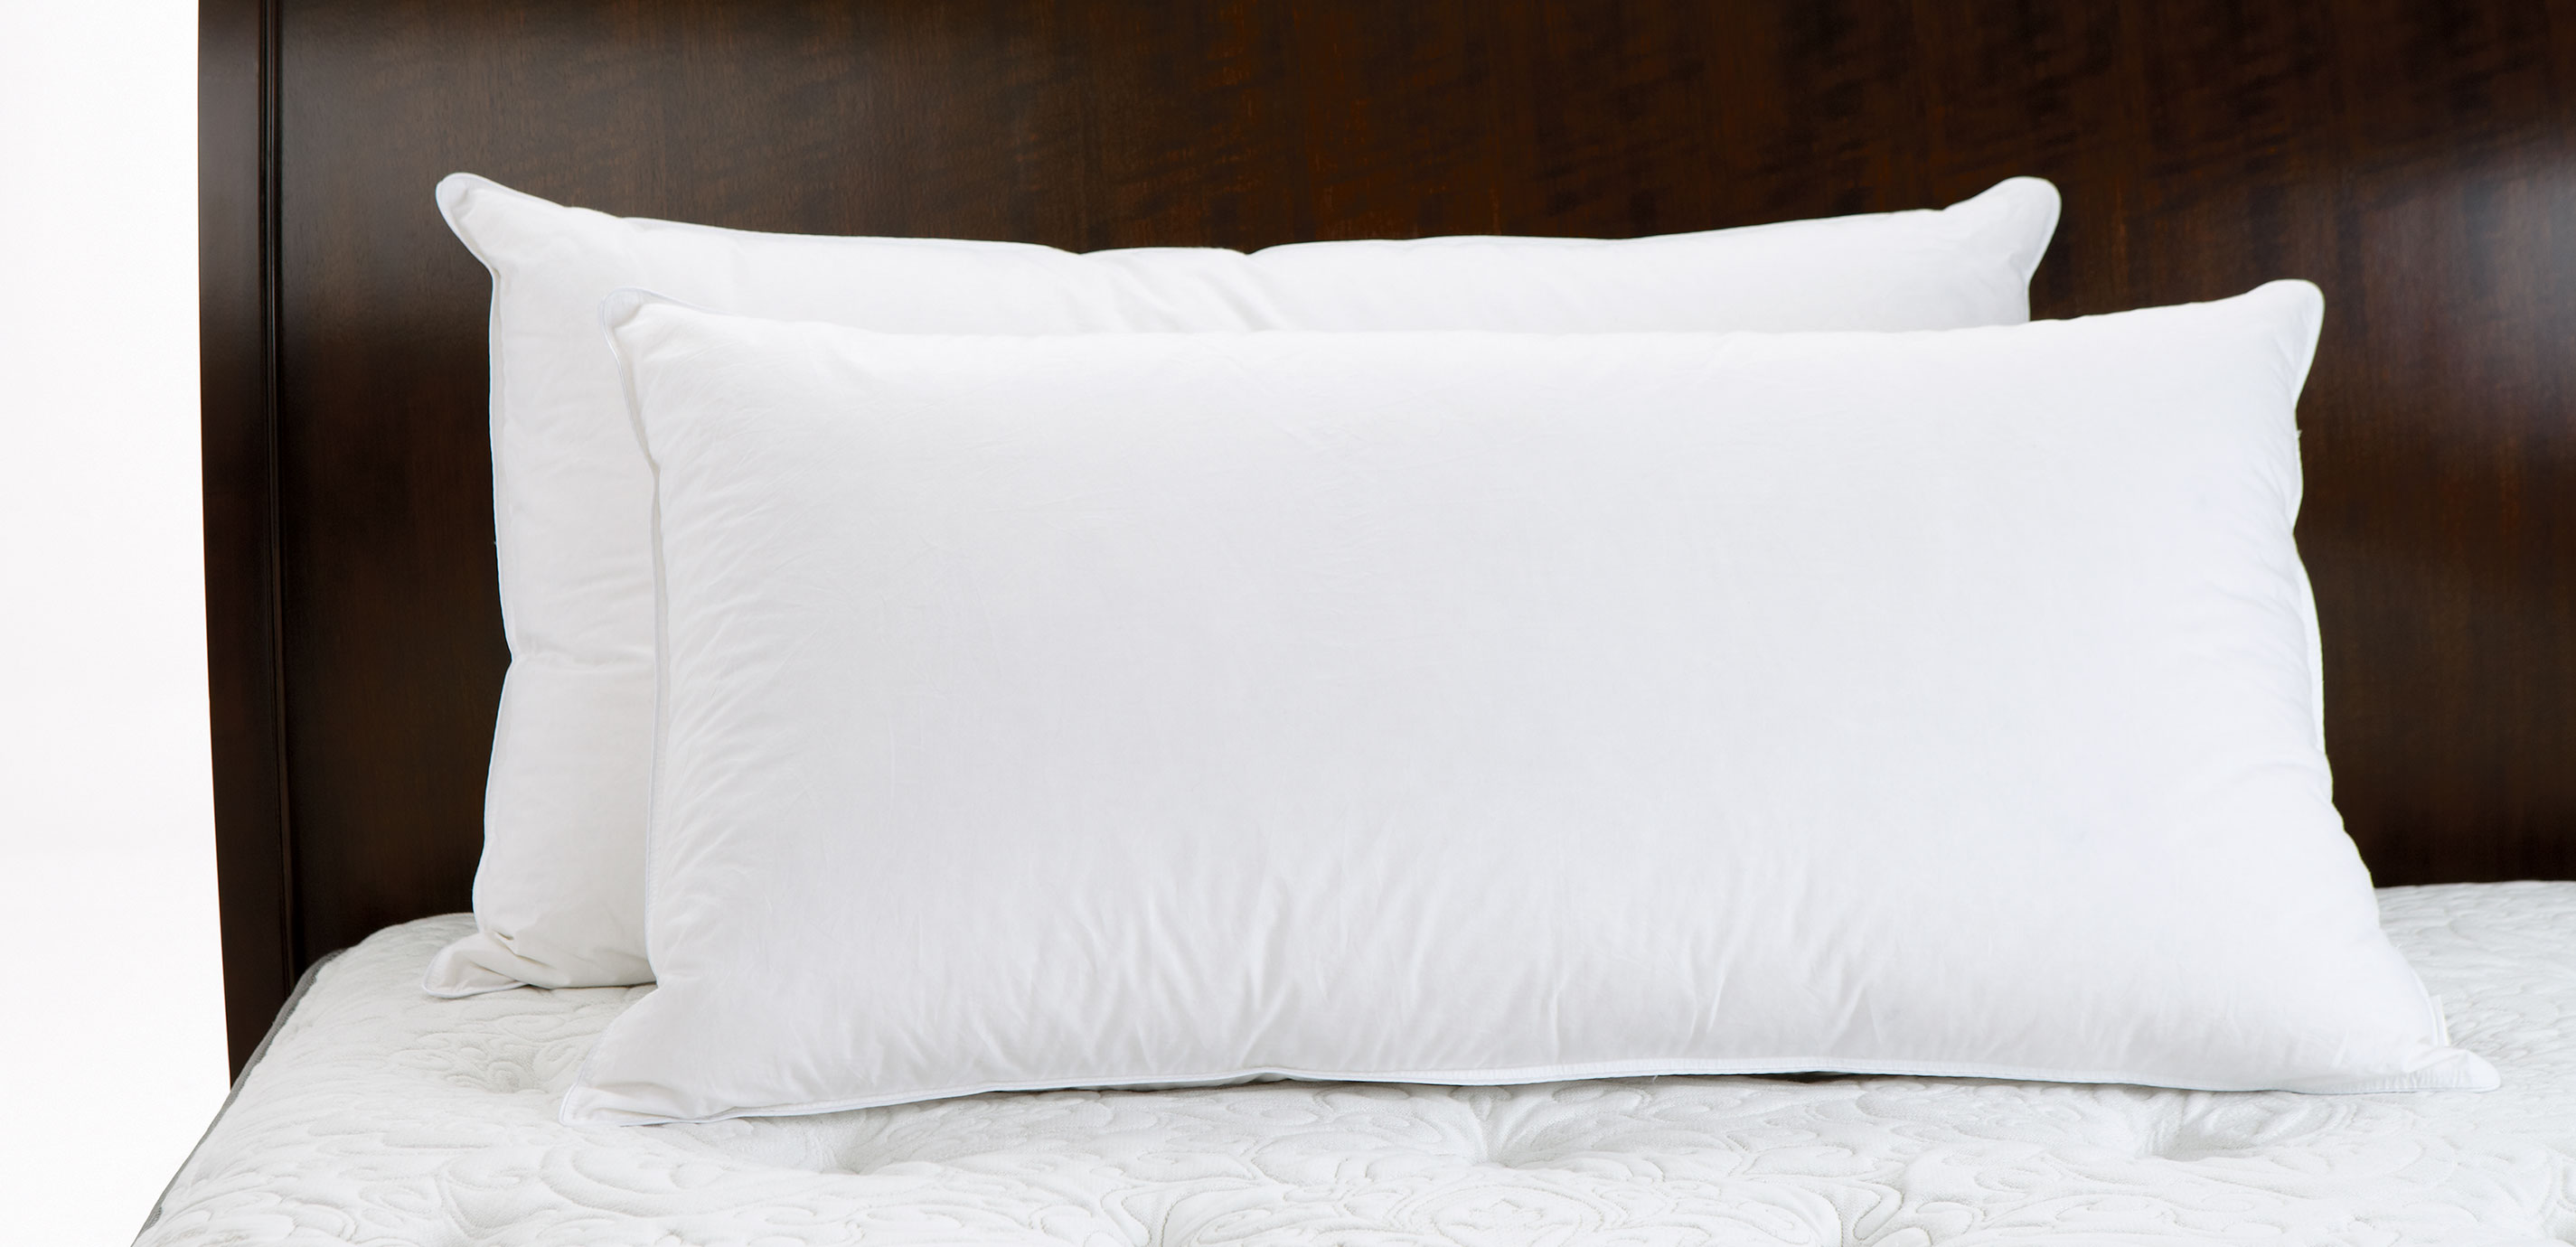 alternative pillow luxury hypoallergenic ip hotel cotton com available walmart sizes style down multiple